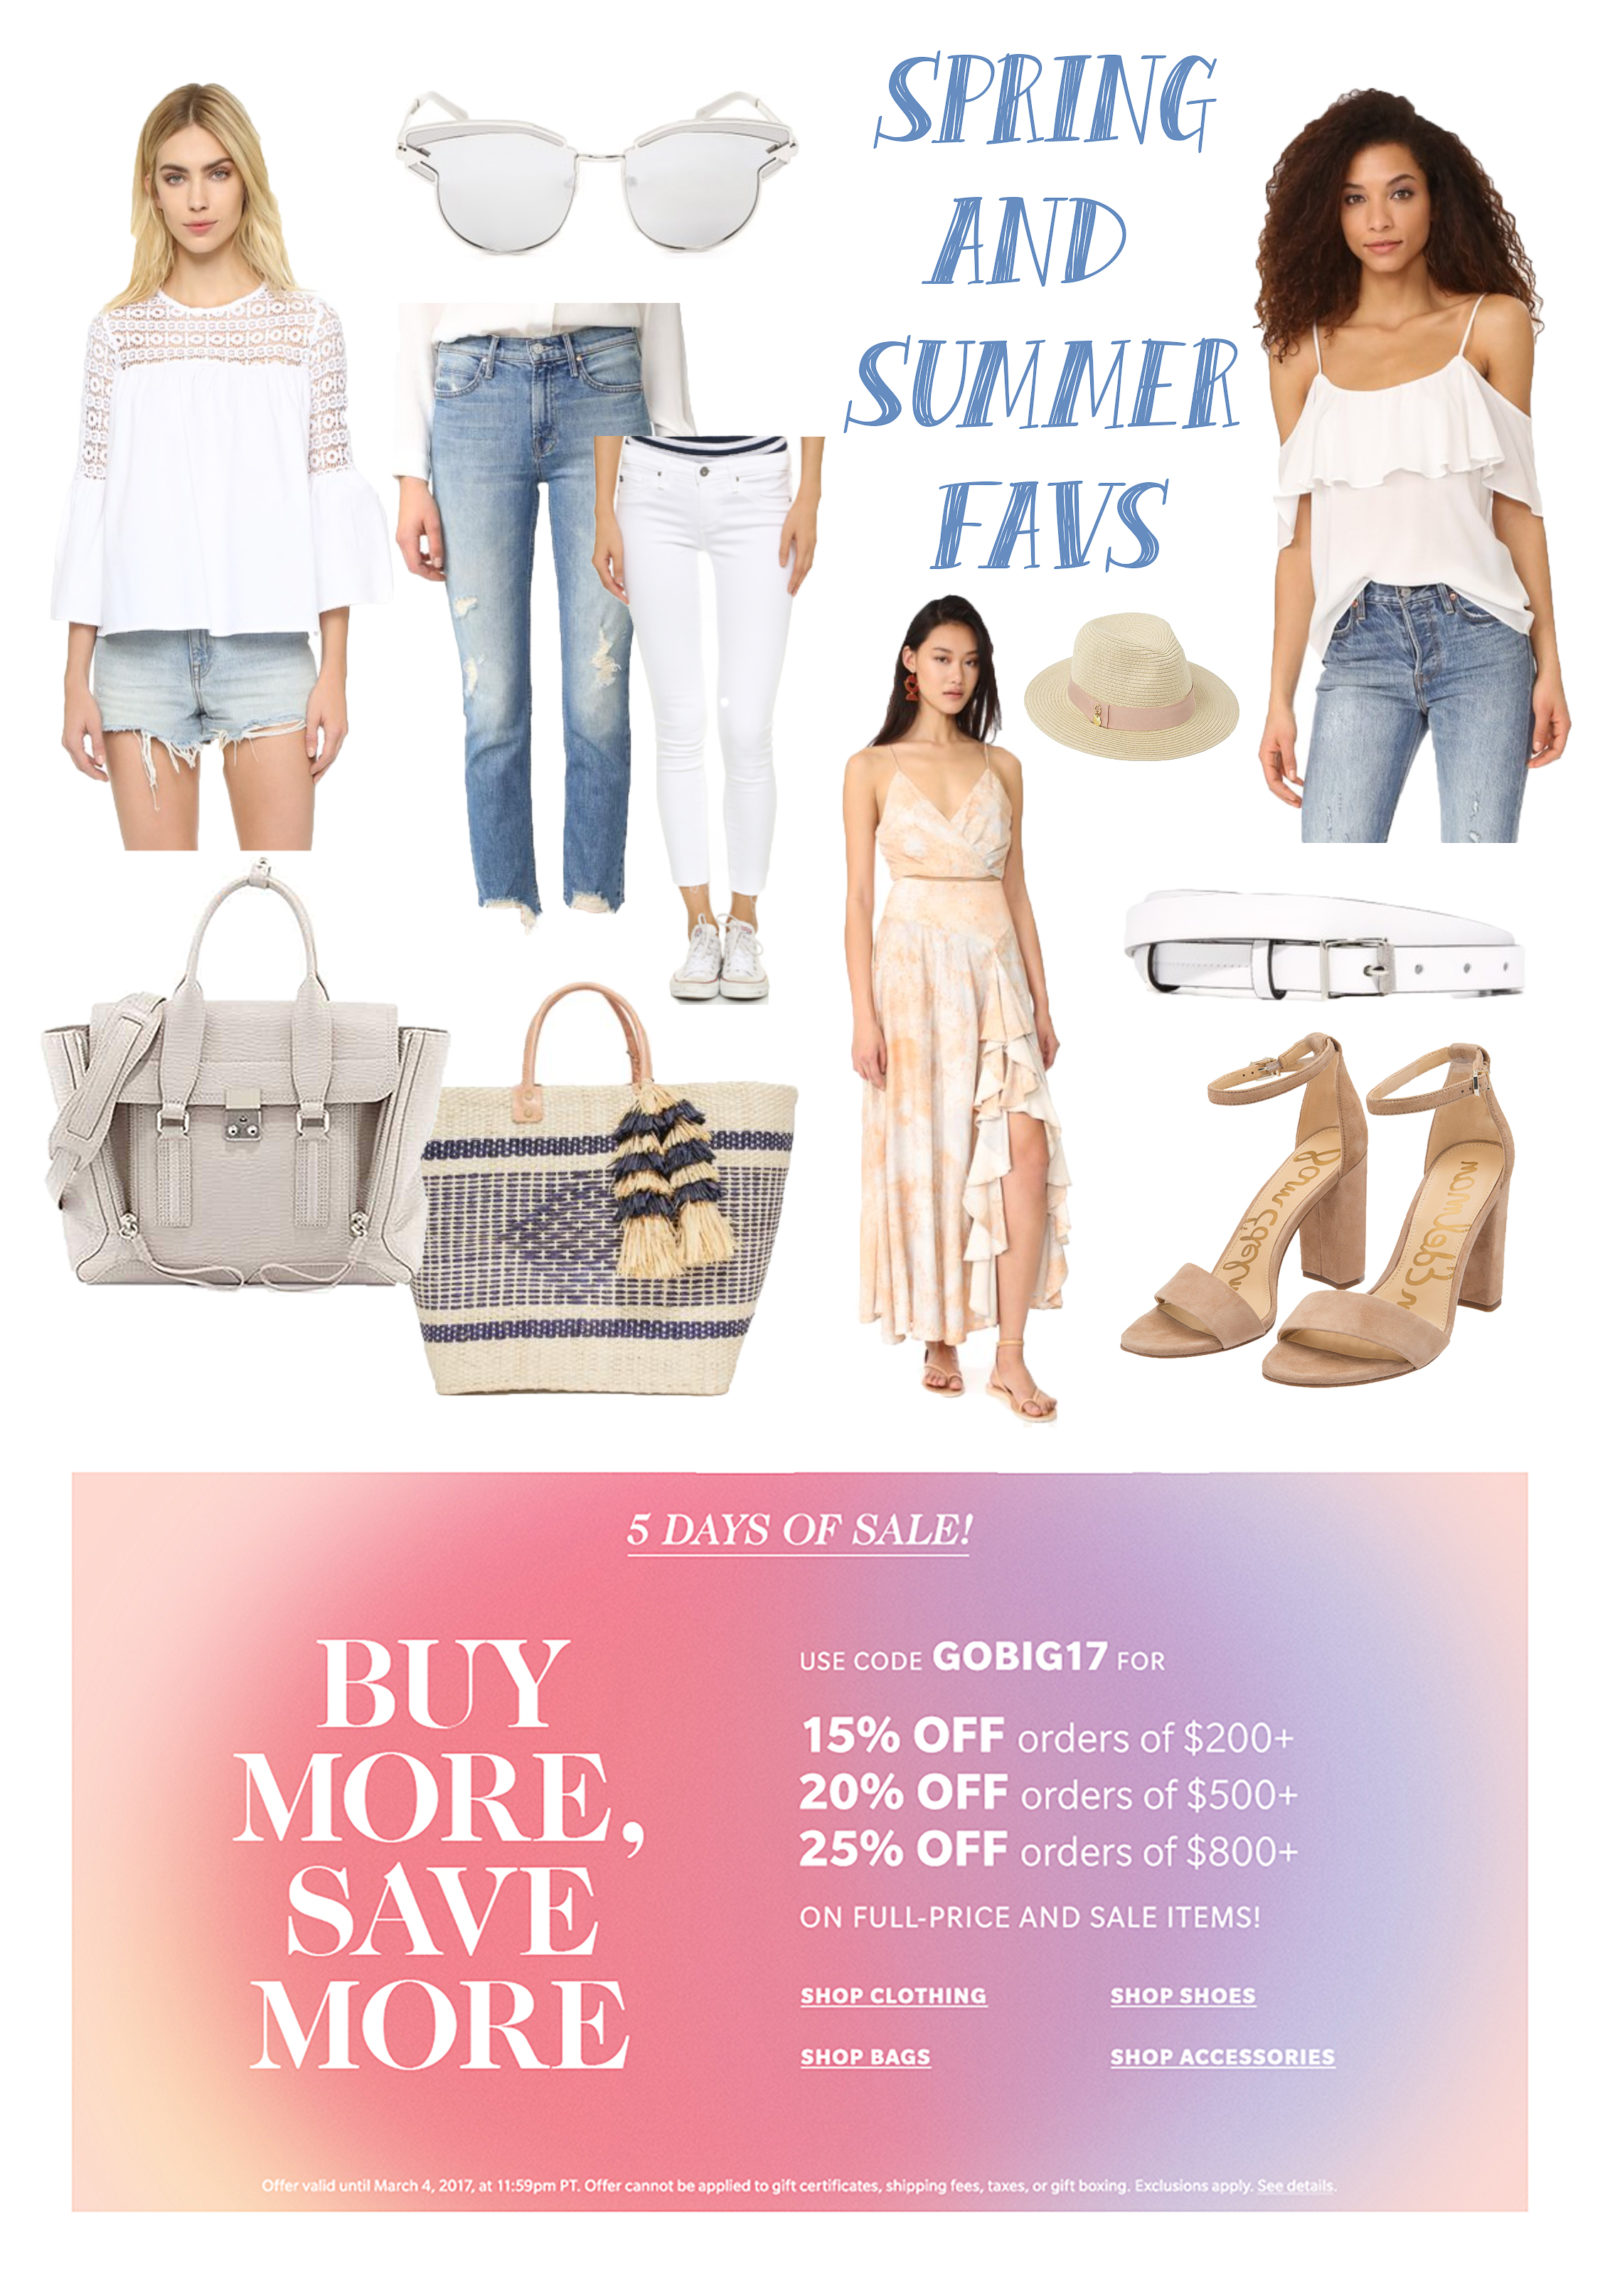 Spring Summer Favorite Looks SHOPBOP SALE - The Classified Chic - @ClassifiedChic